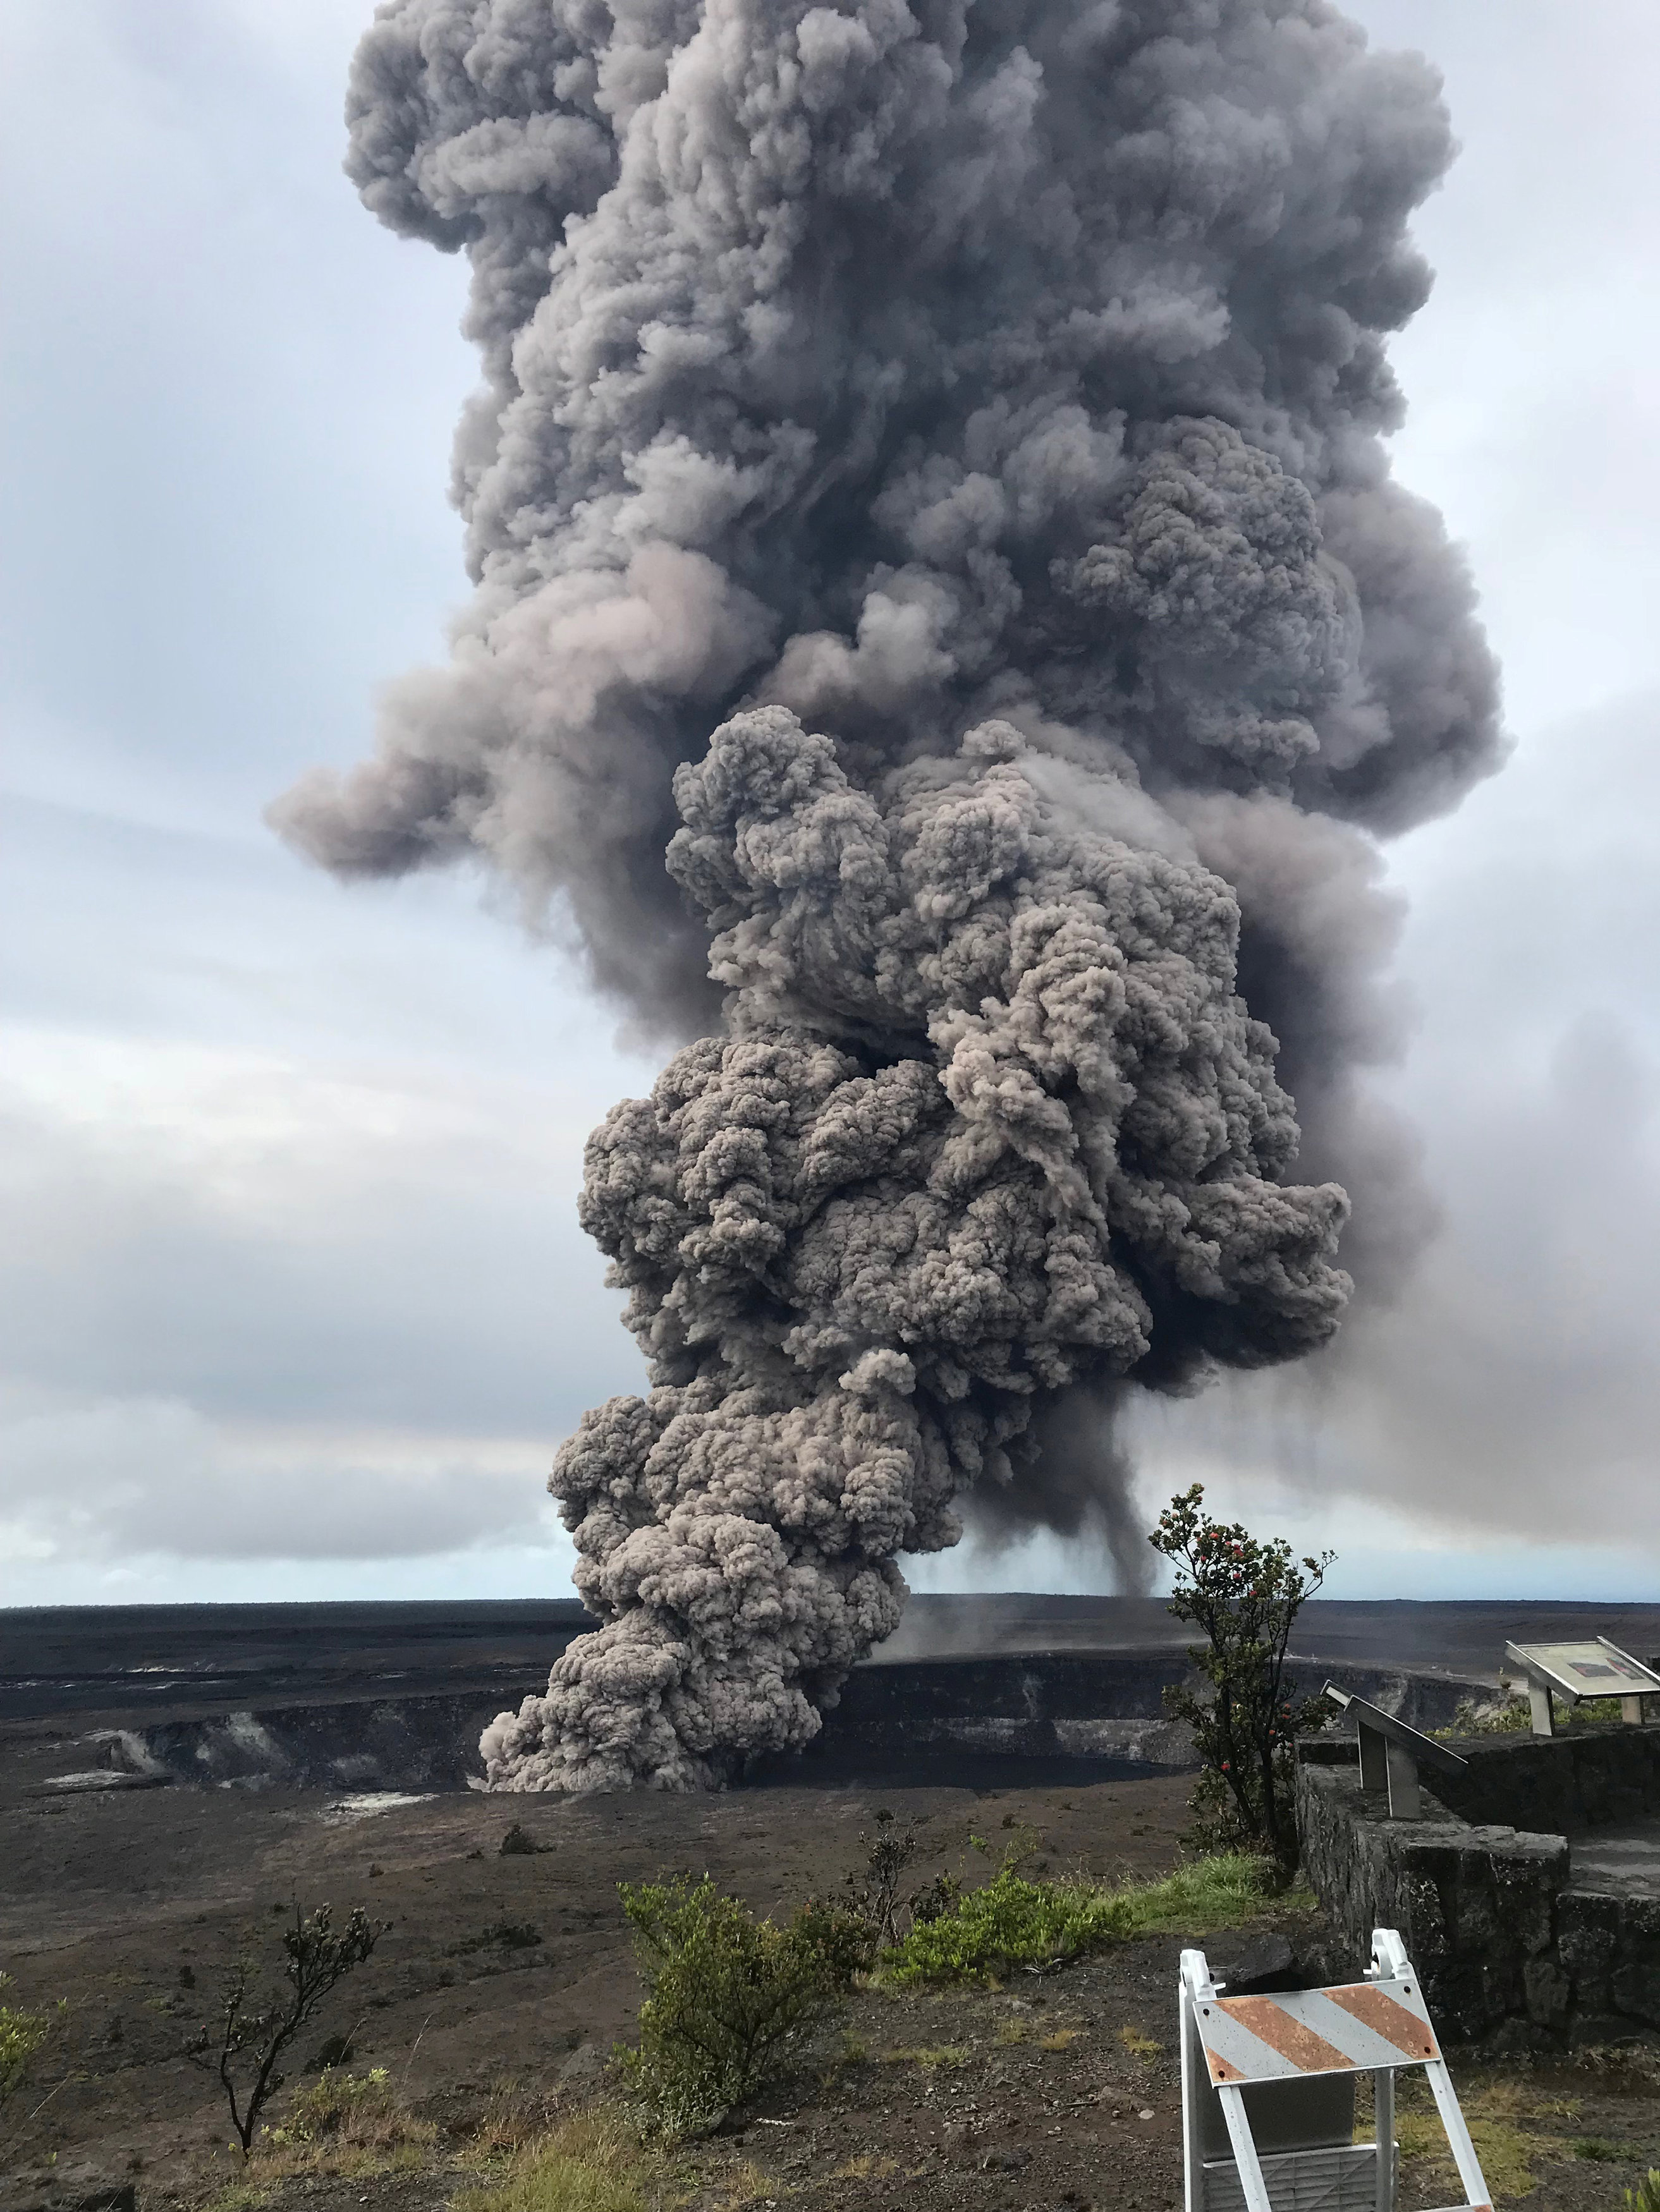 An ash column rises from the Overlook crater at the summit of Kilauea Volcano in Hawaii, May 9, 2018. USGS/Handout via REUTERS